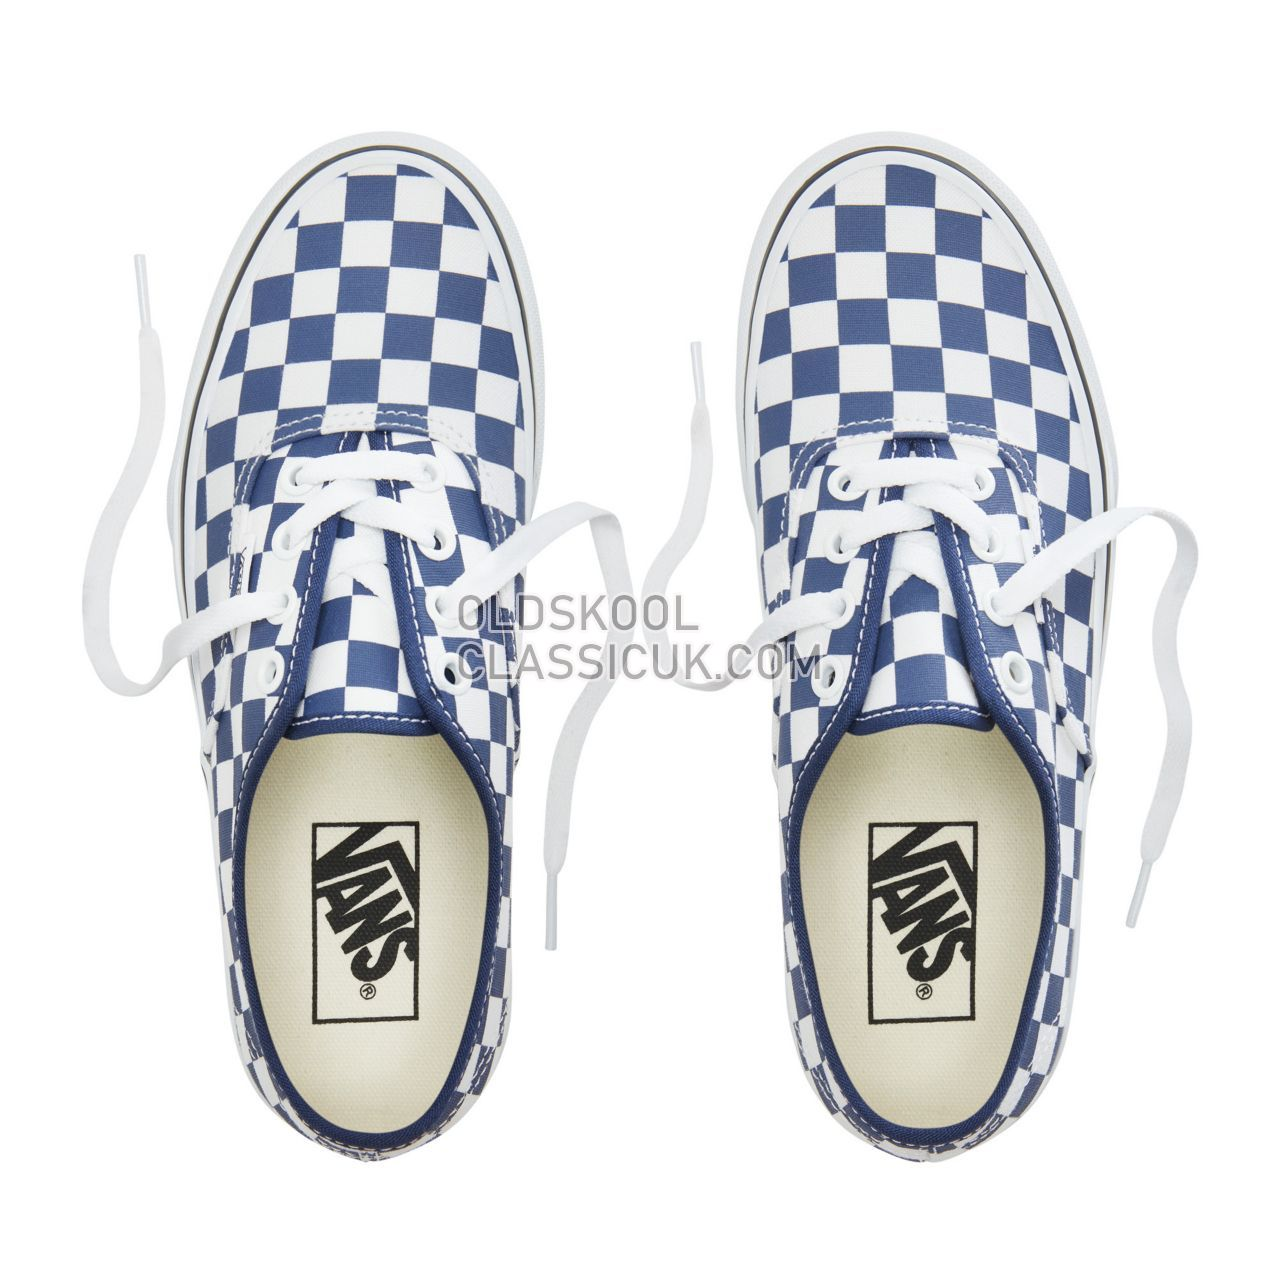 Vans Checkerboard Authentic Platform 2.0 Sneakers Womens (Checkerboard) Medieval Blue/True White VA3AV8S4D Shoes